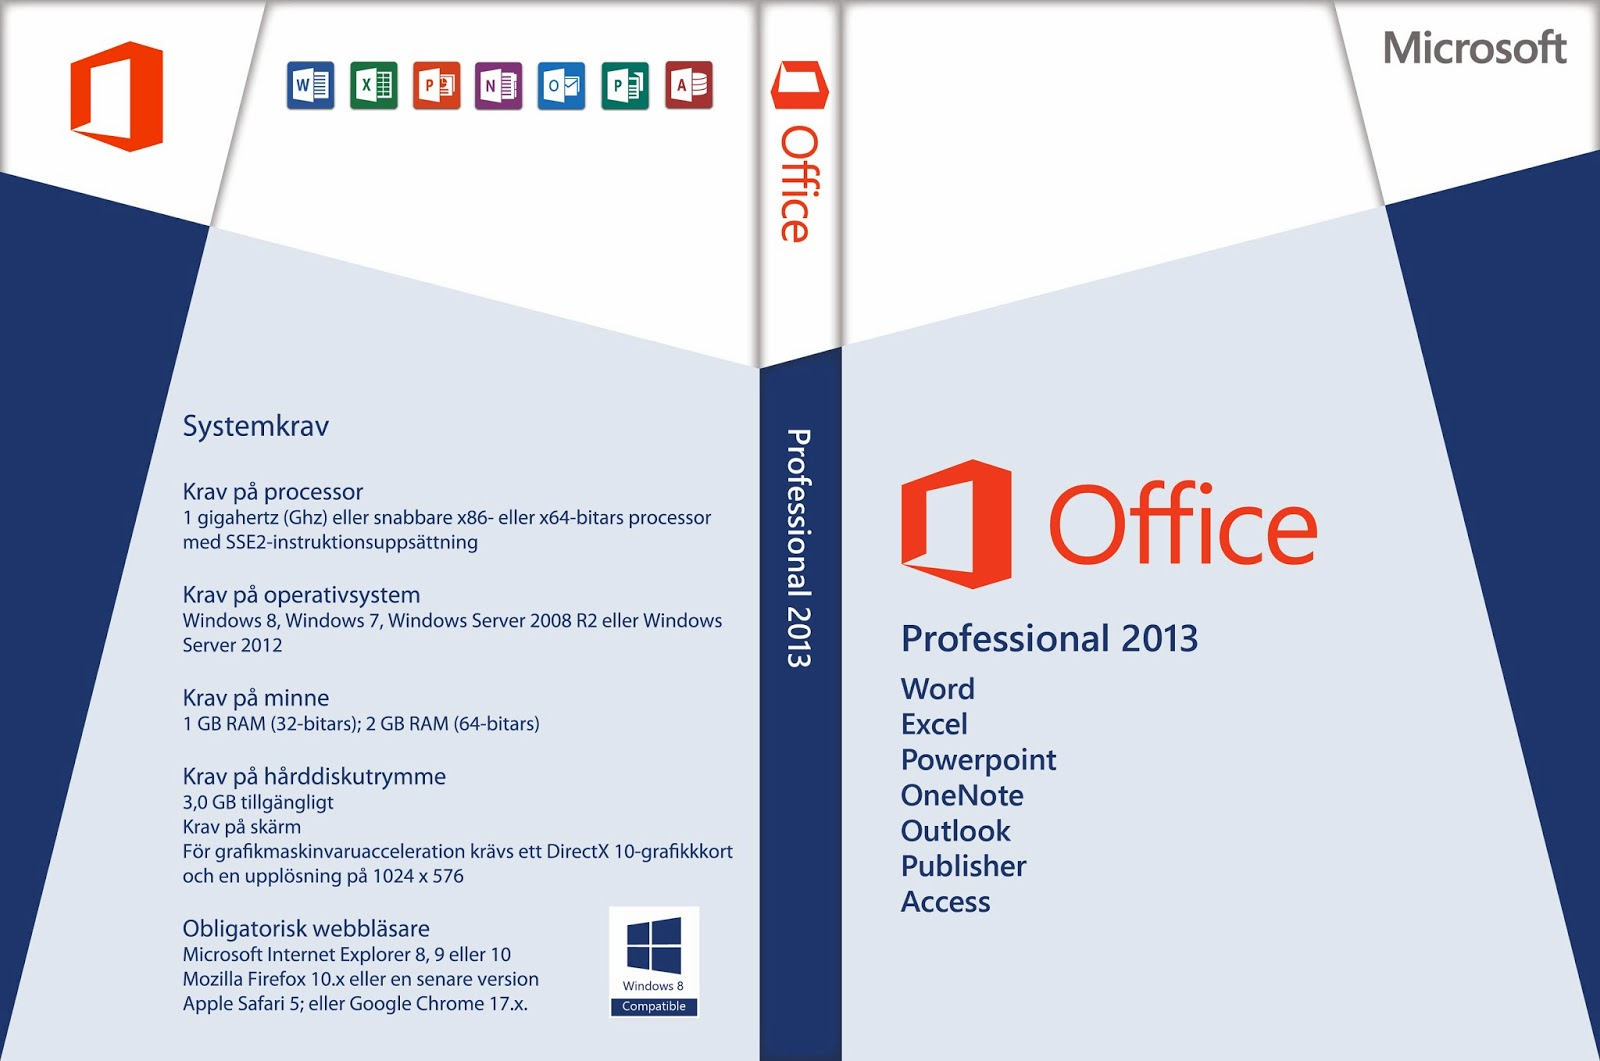 microsoft office professional 2013 review